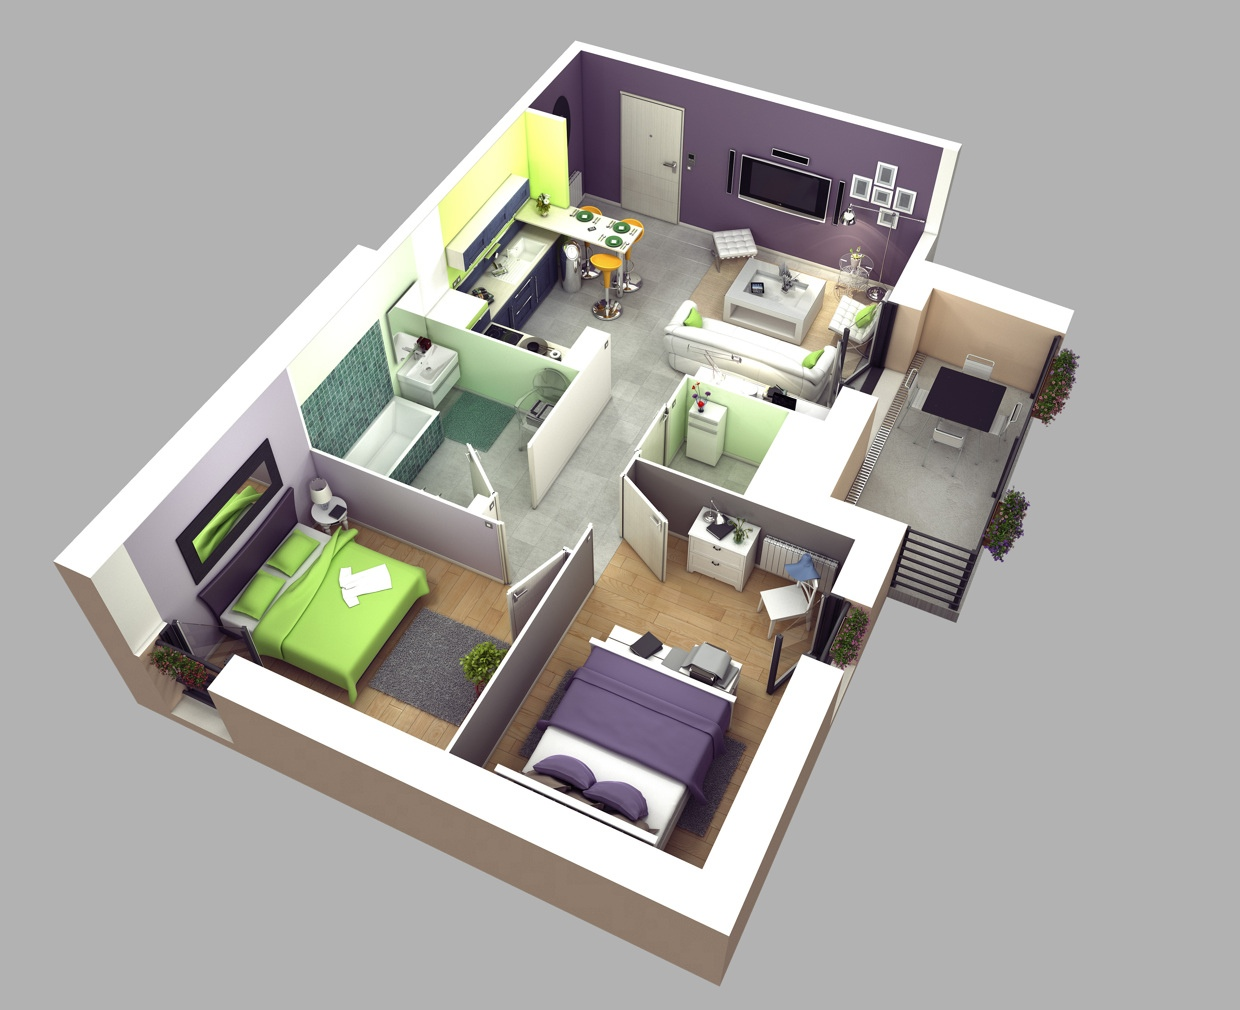 Incredible 2 Bedroom Apartment House Plans Interior Design Ideas Skatsoteloinfo